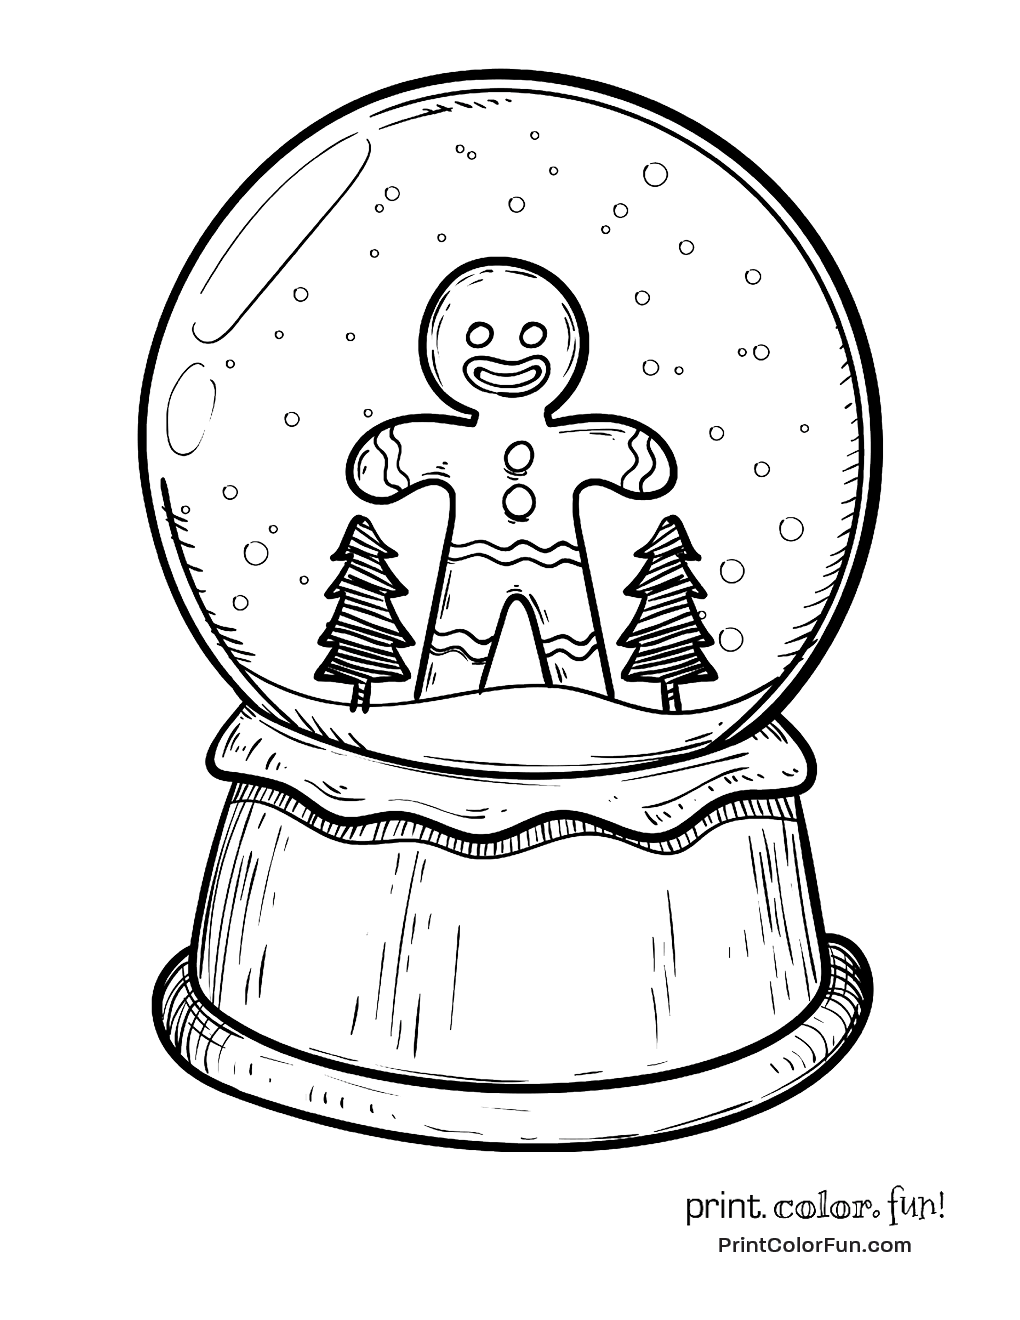 A Cute Gingerbread Man Is Inside This Toy Snow Globe Just Click On The Image Gingerbread Man Coloring Page Christmas Coloring Sheets Christmas Coloring Pages